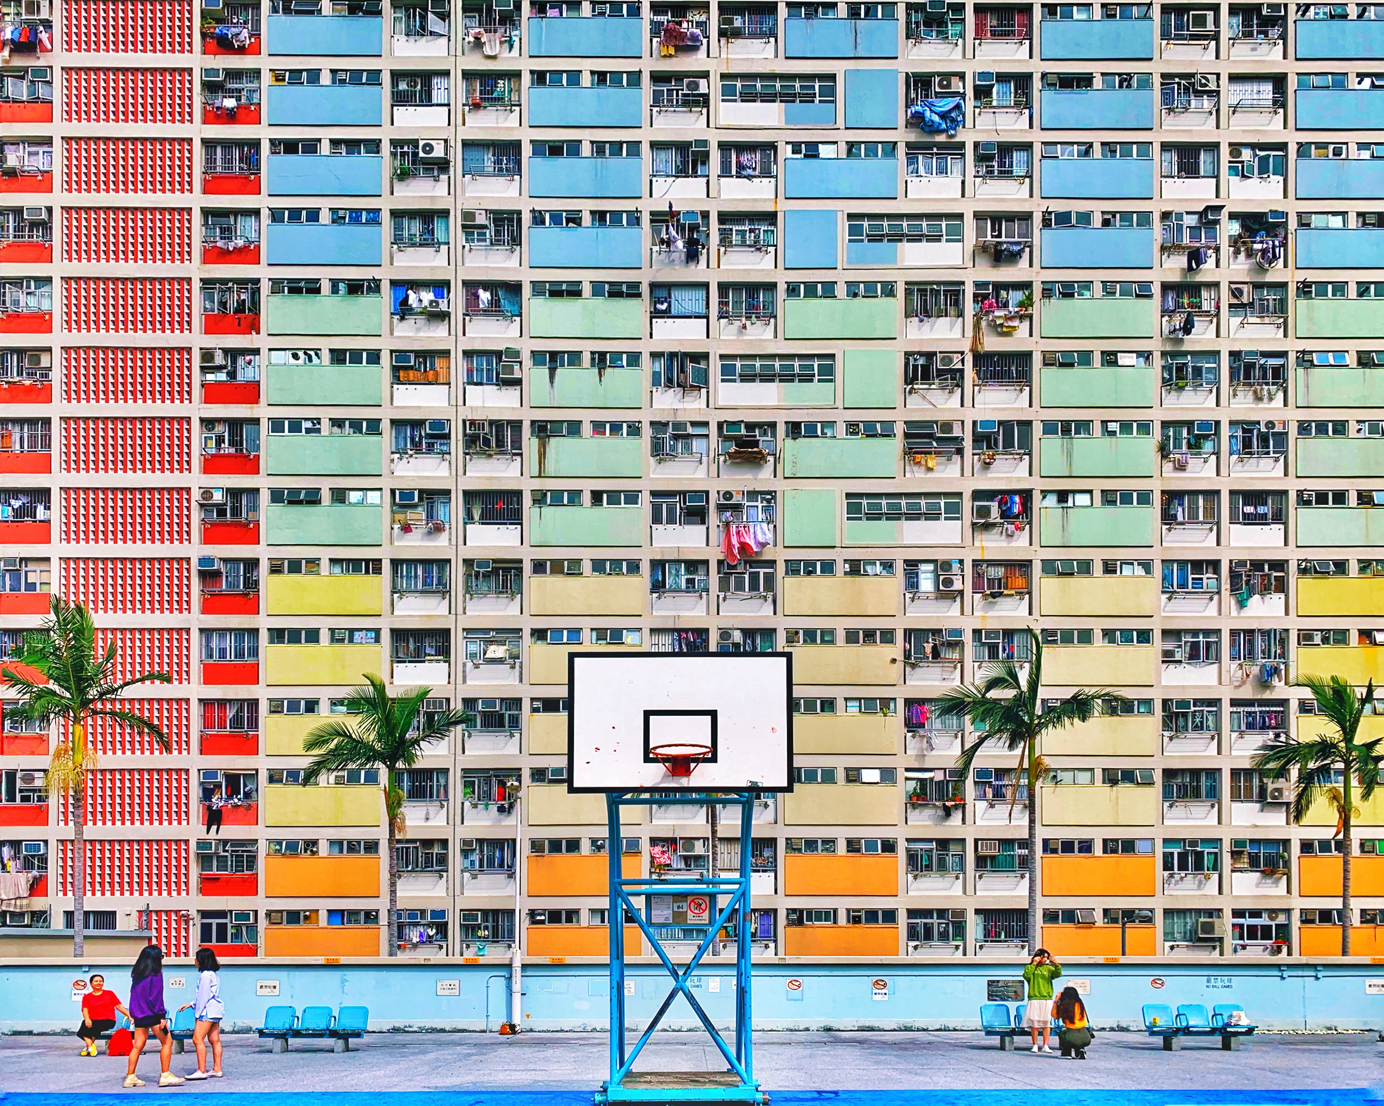 #ShotoniPhone: Apple selects its top 10 winners around the world